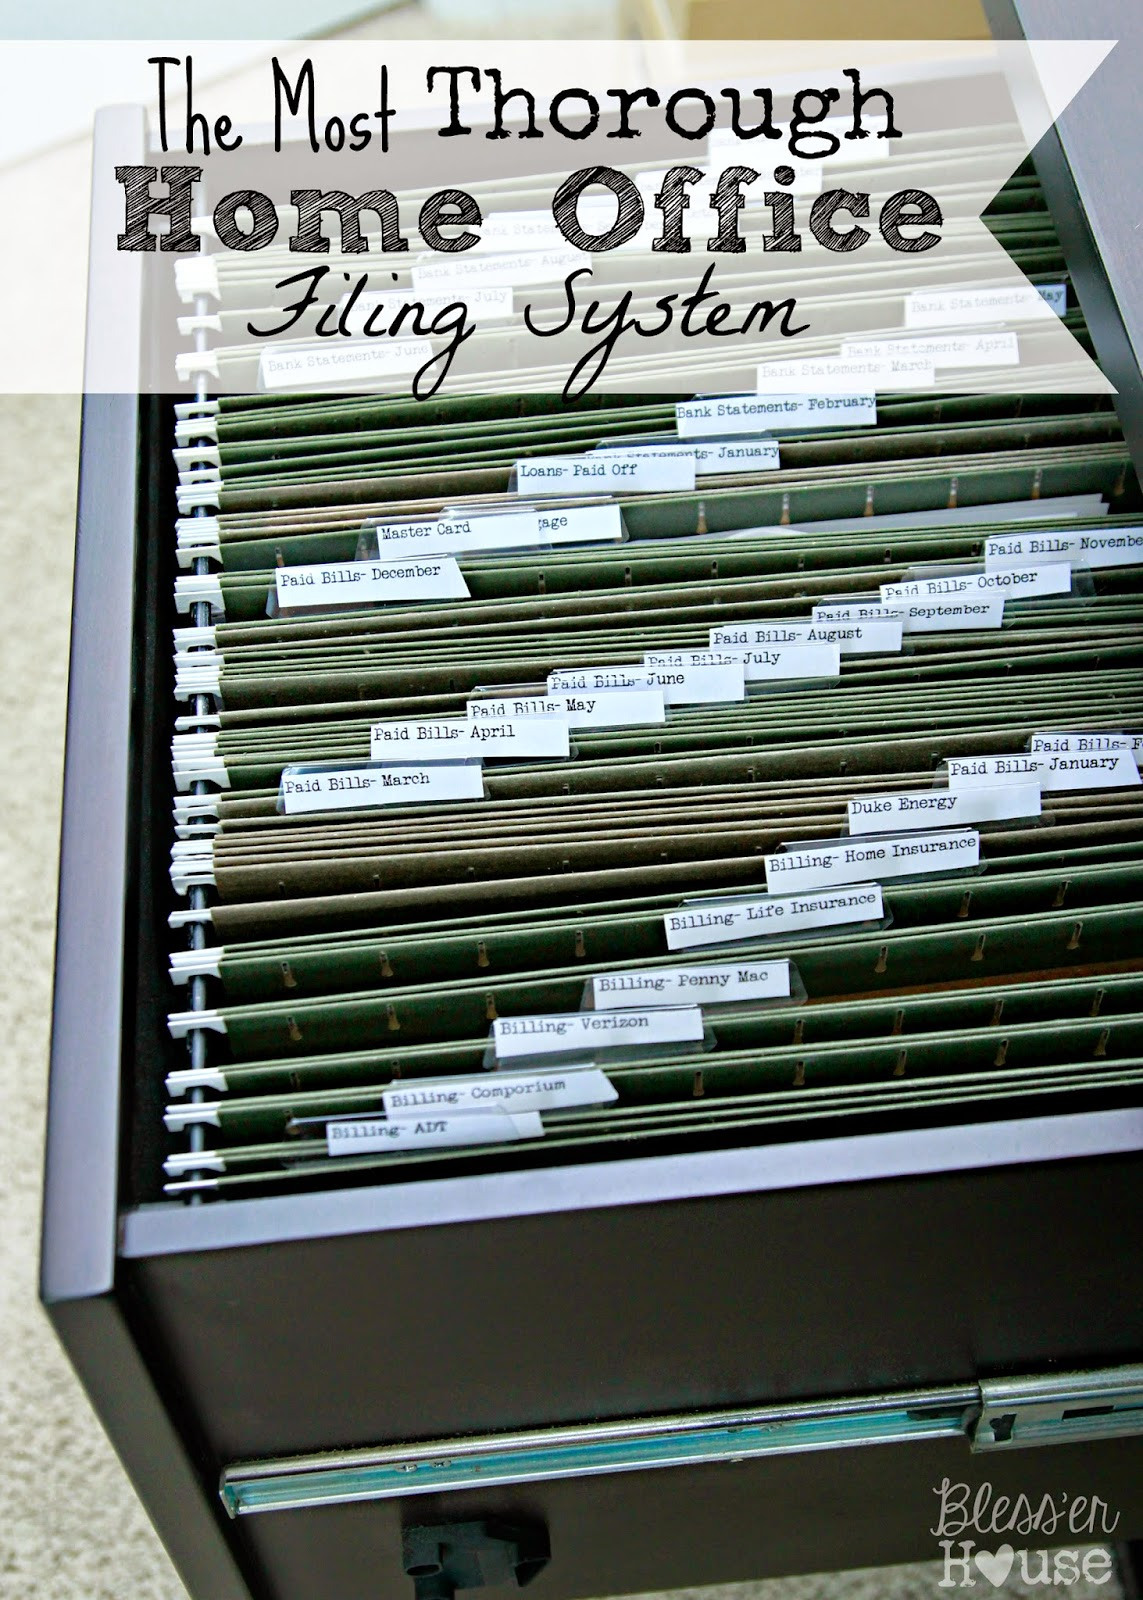 Many ... & Organizing the Most Thorough Home Office Filing System - Blessu0027er House